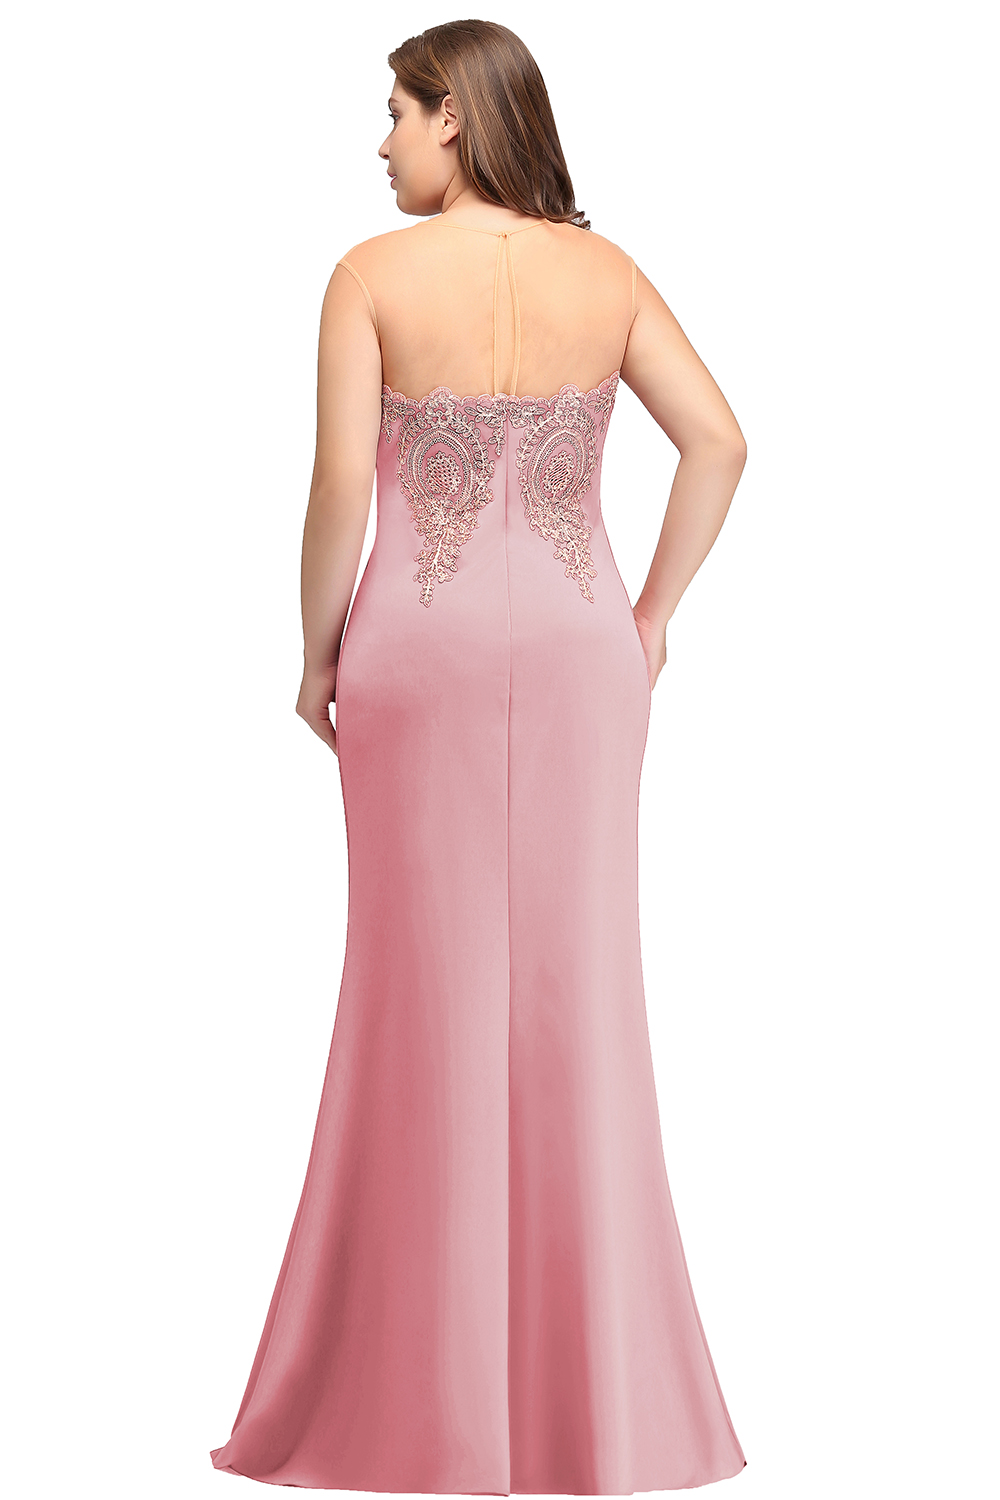 Image 2 - Plus Size Long Evening Dress 2019 Mermaid Formal Dress Party Elegant Evening Gown Sleeveless Applique robe de soiree-in Evening Dresses from Weddings & Events